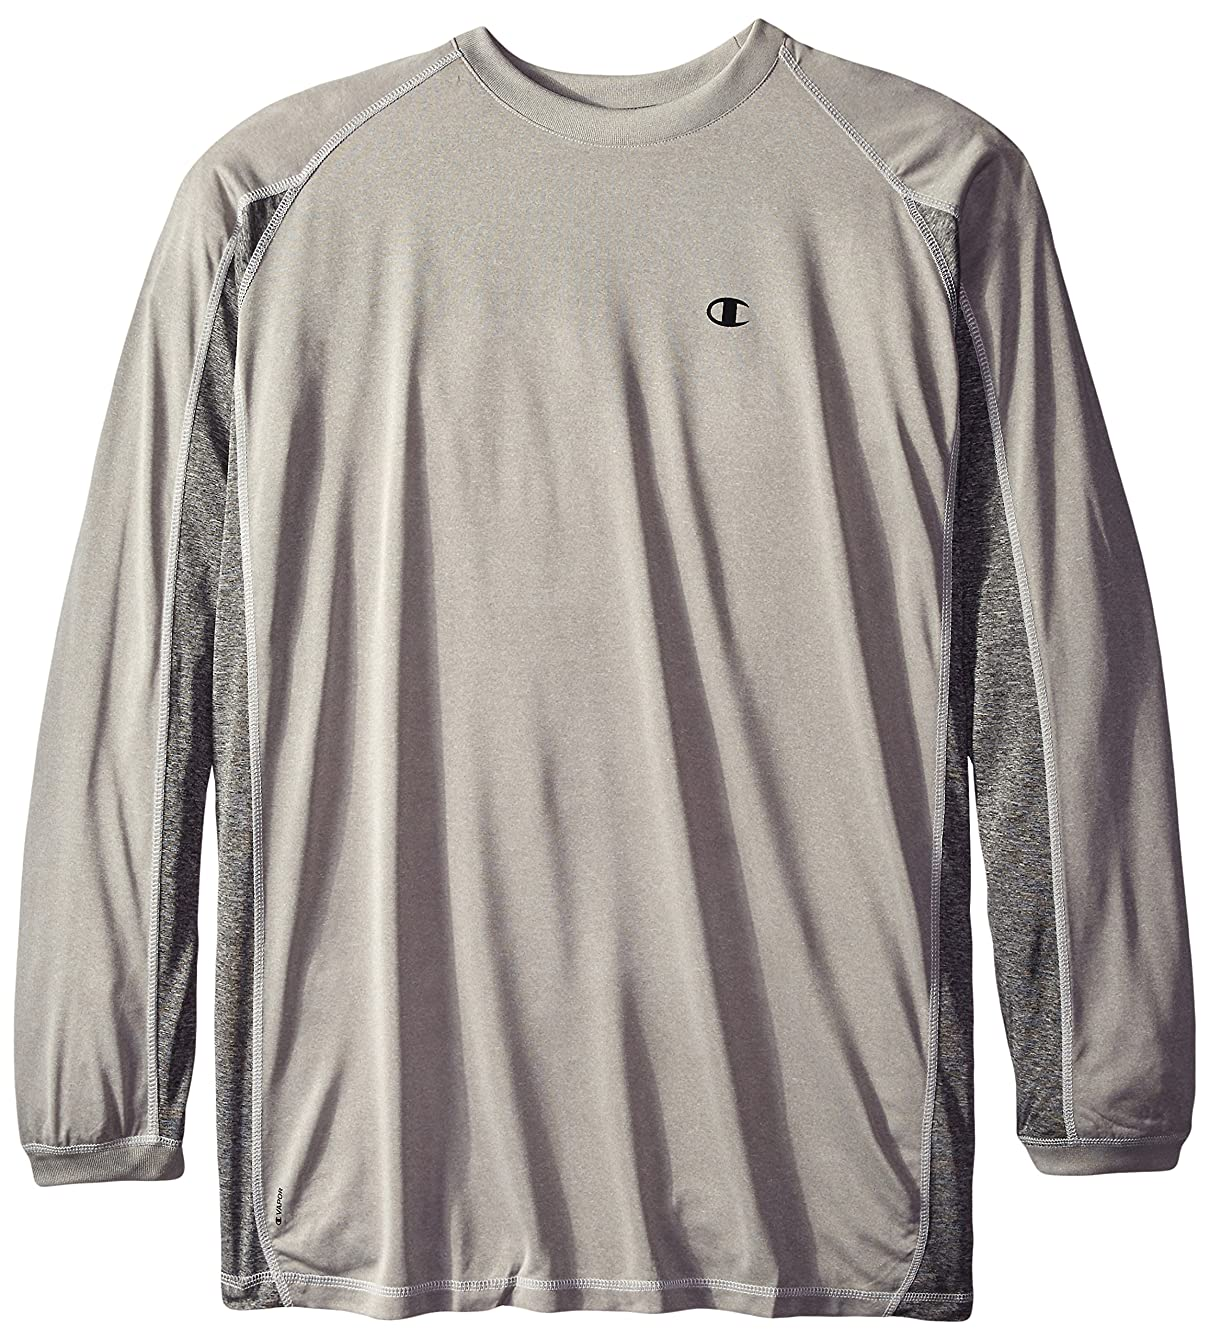 マナー優れたケーキChampion Men's Big-Tall Long Sleeve C Vaport Pieced Active Crew T-Shirt, Heather/Granite, 3X/Tall